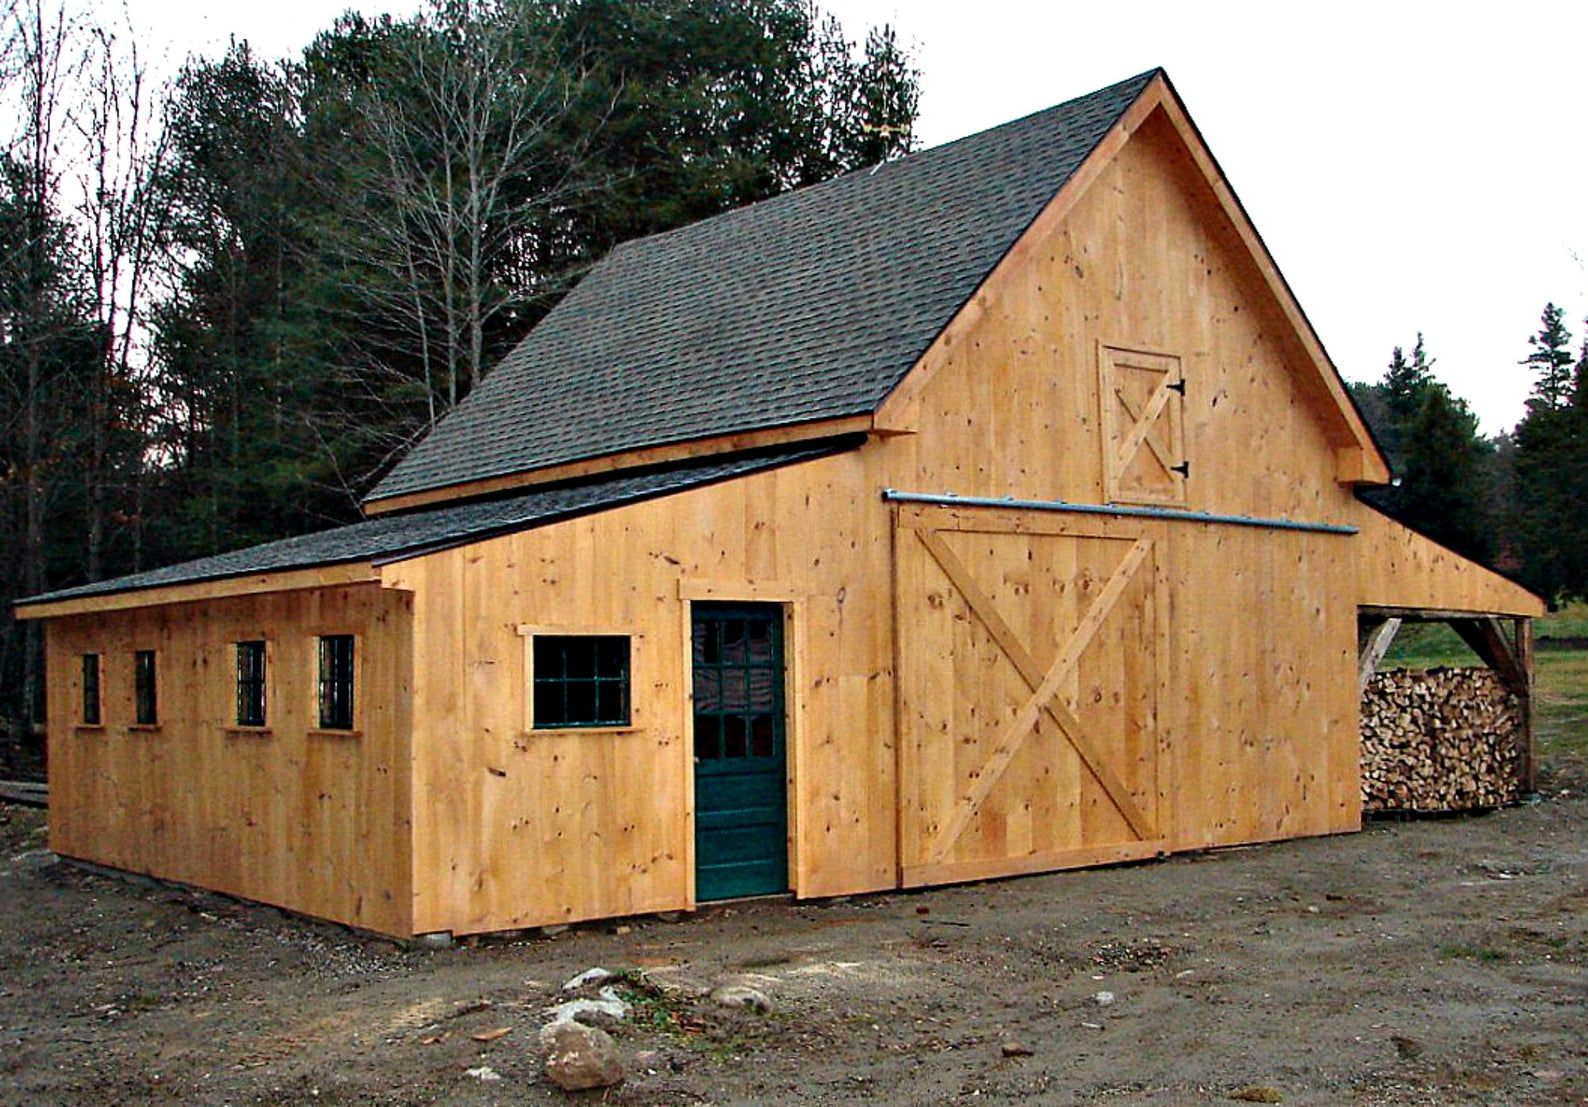 41 Small Barn Designs Forty One Optional Layouts Complete Etsy In 2021 Barn Construction Backyard Barn Building A Pole Barn